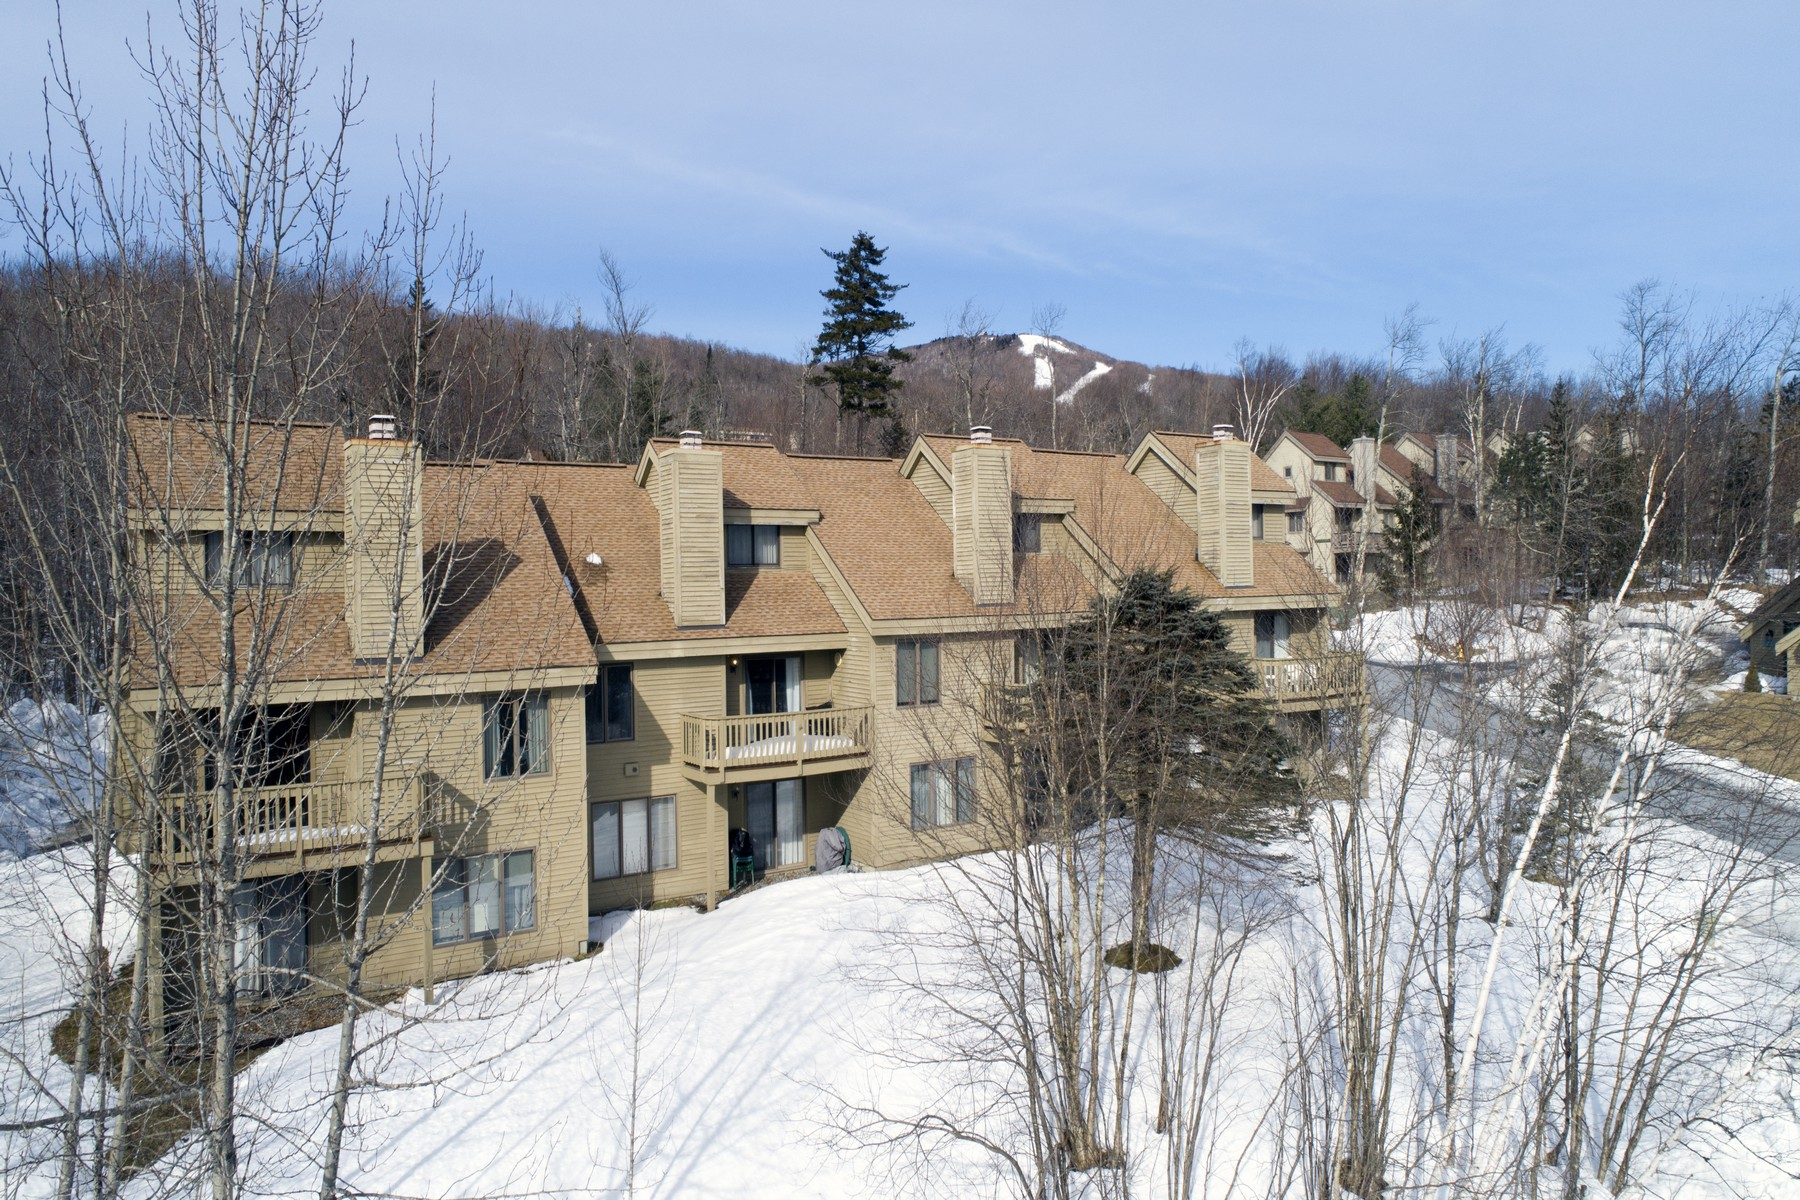 Condominium for Sale at Three- Level Townhouse in Bromley Village 66 Sugar Brook Rd E3 Peru, Vermont 05152 United States